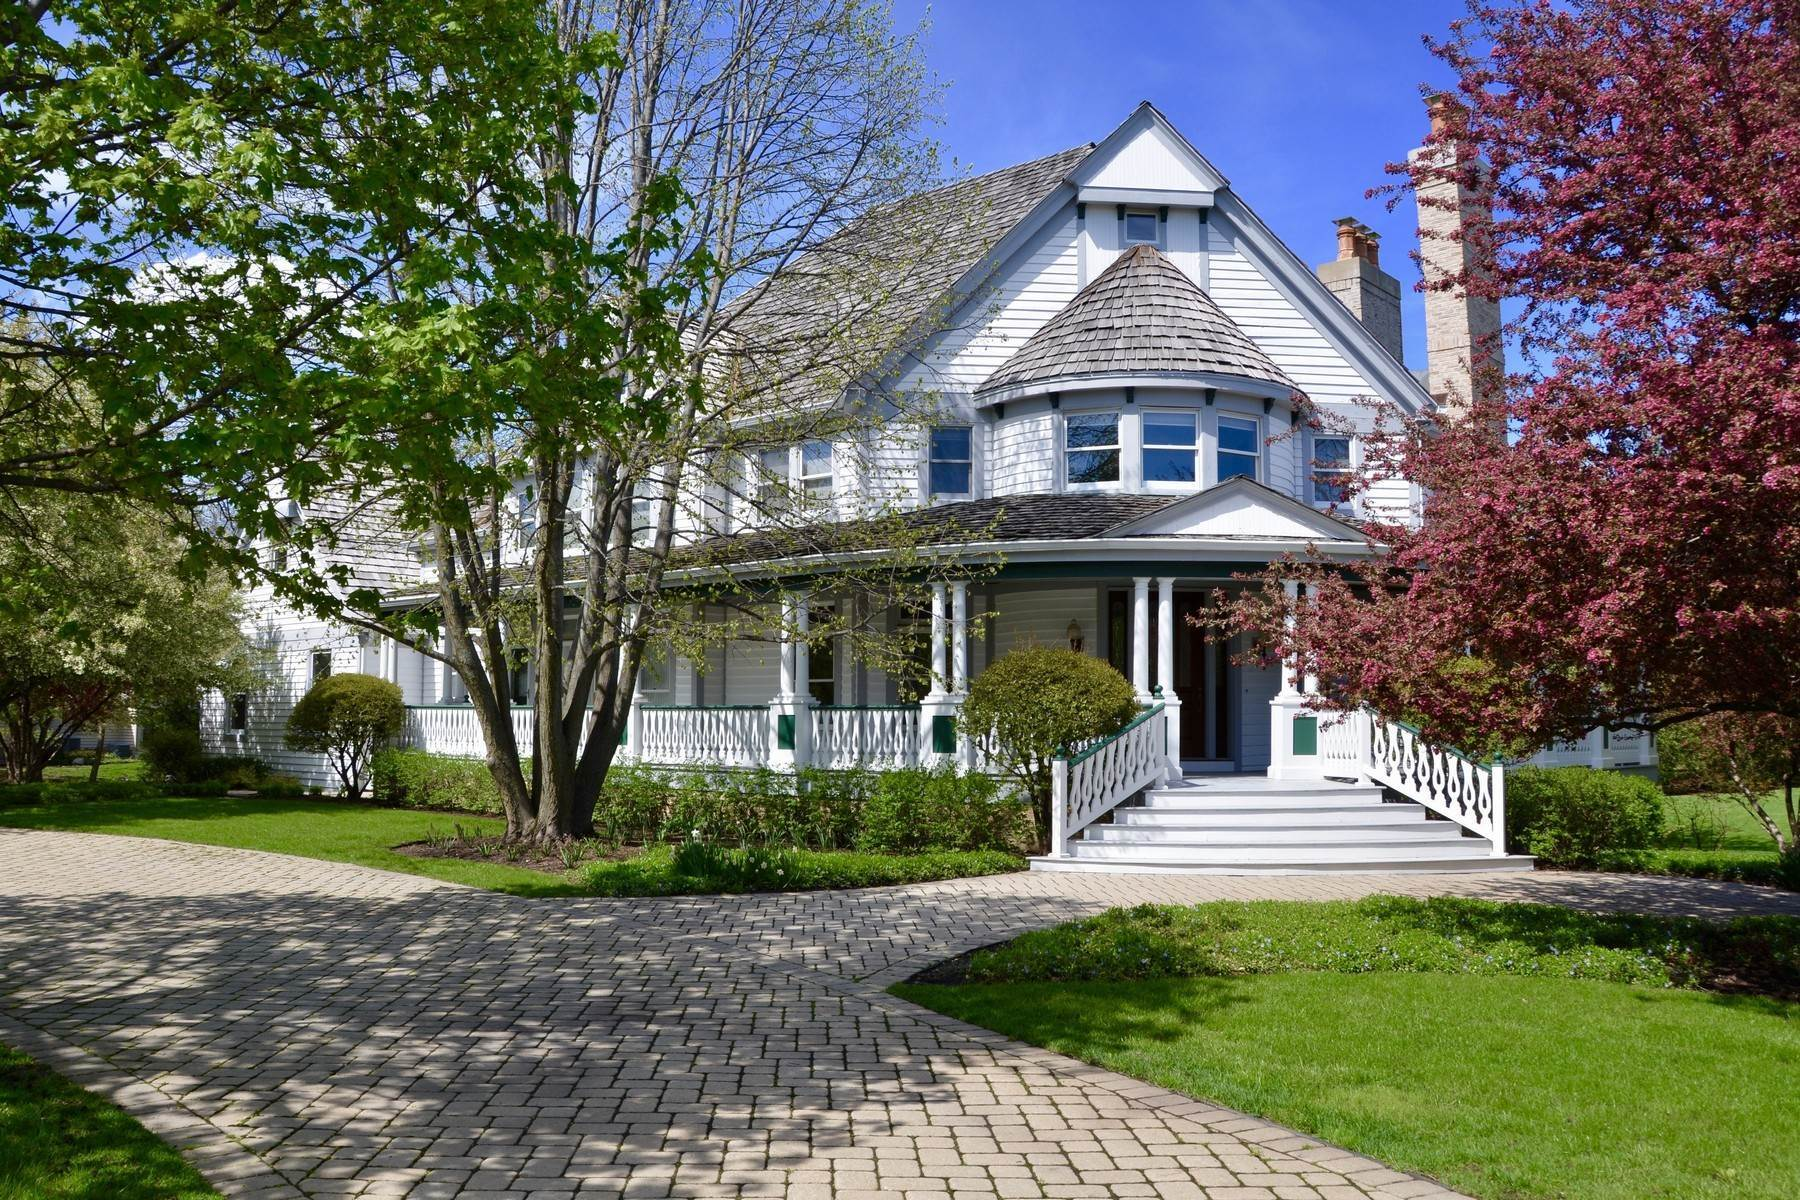 Property for Sale at A true classic Victorian 22 S Wynstone Drive North Barrington, Illinois 60010 United States